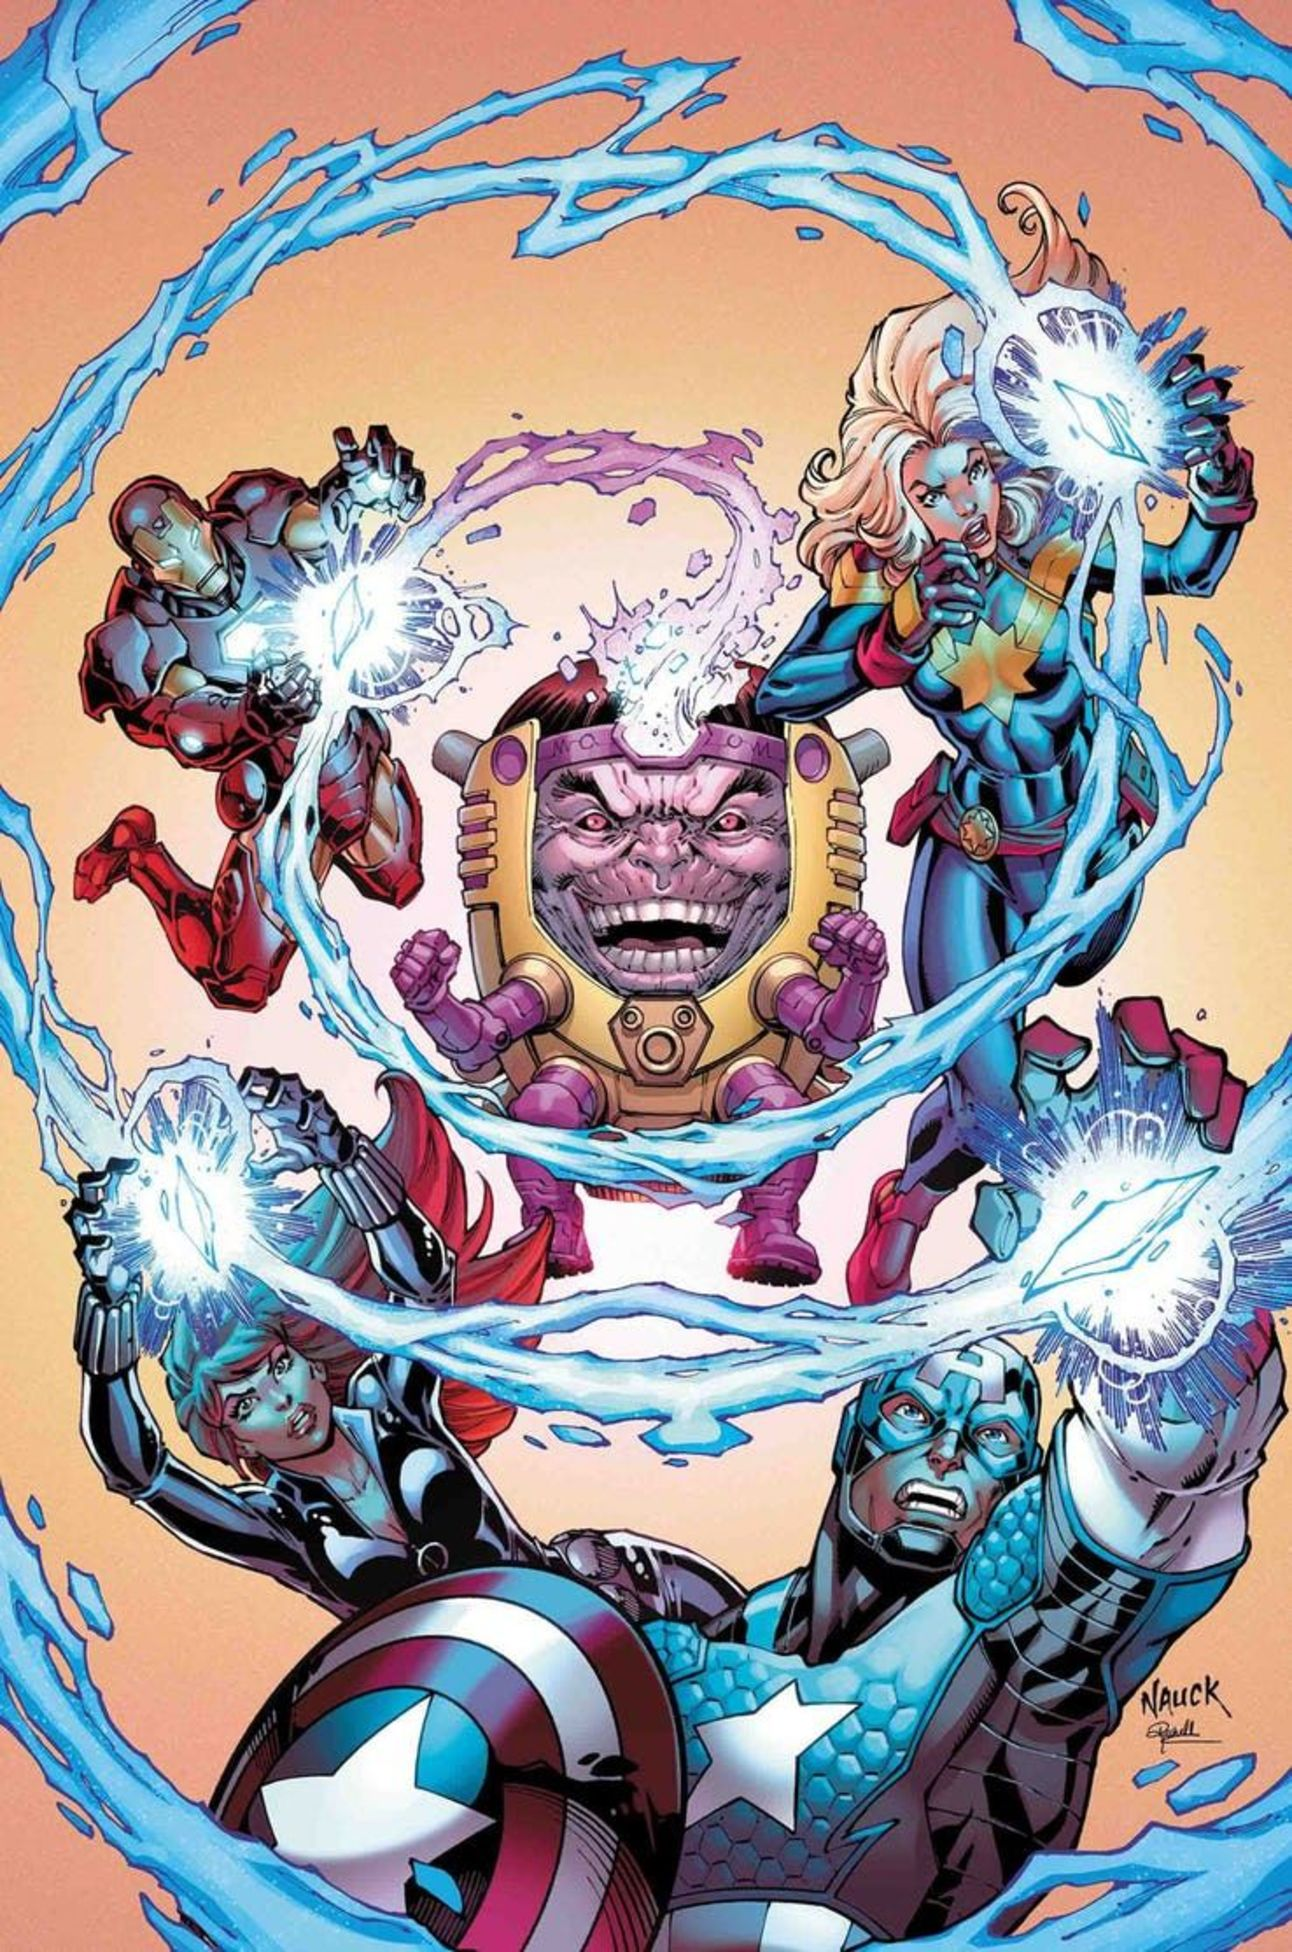 Marvel Comics single-issue solicitations for April 2019